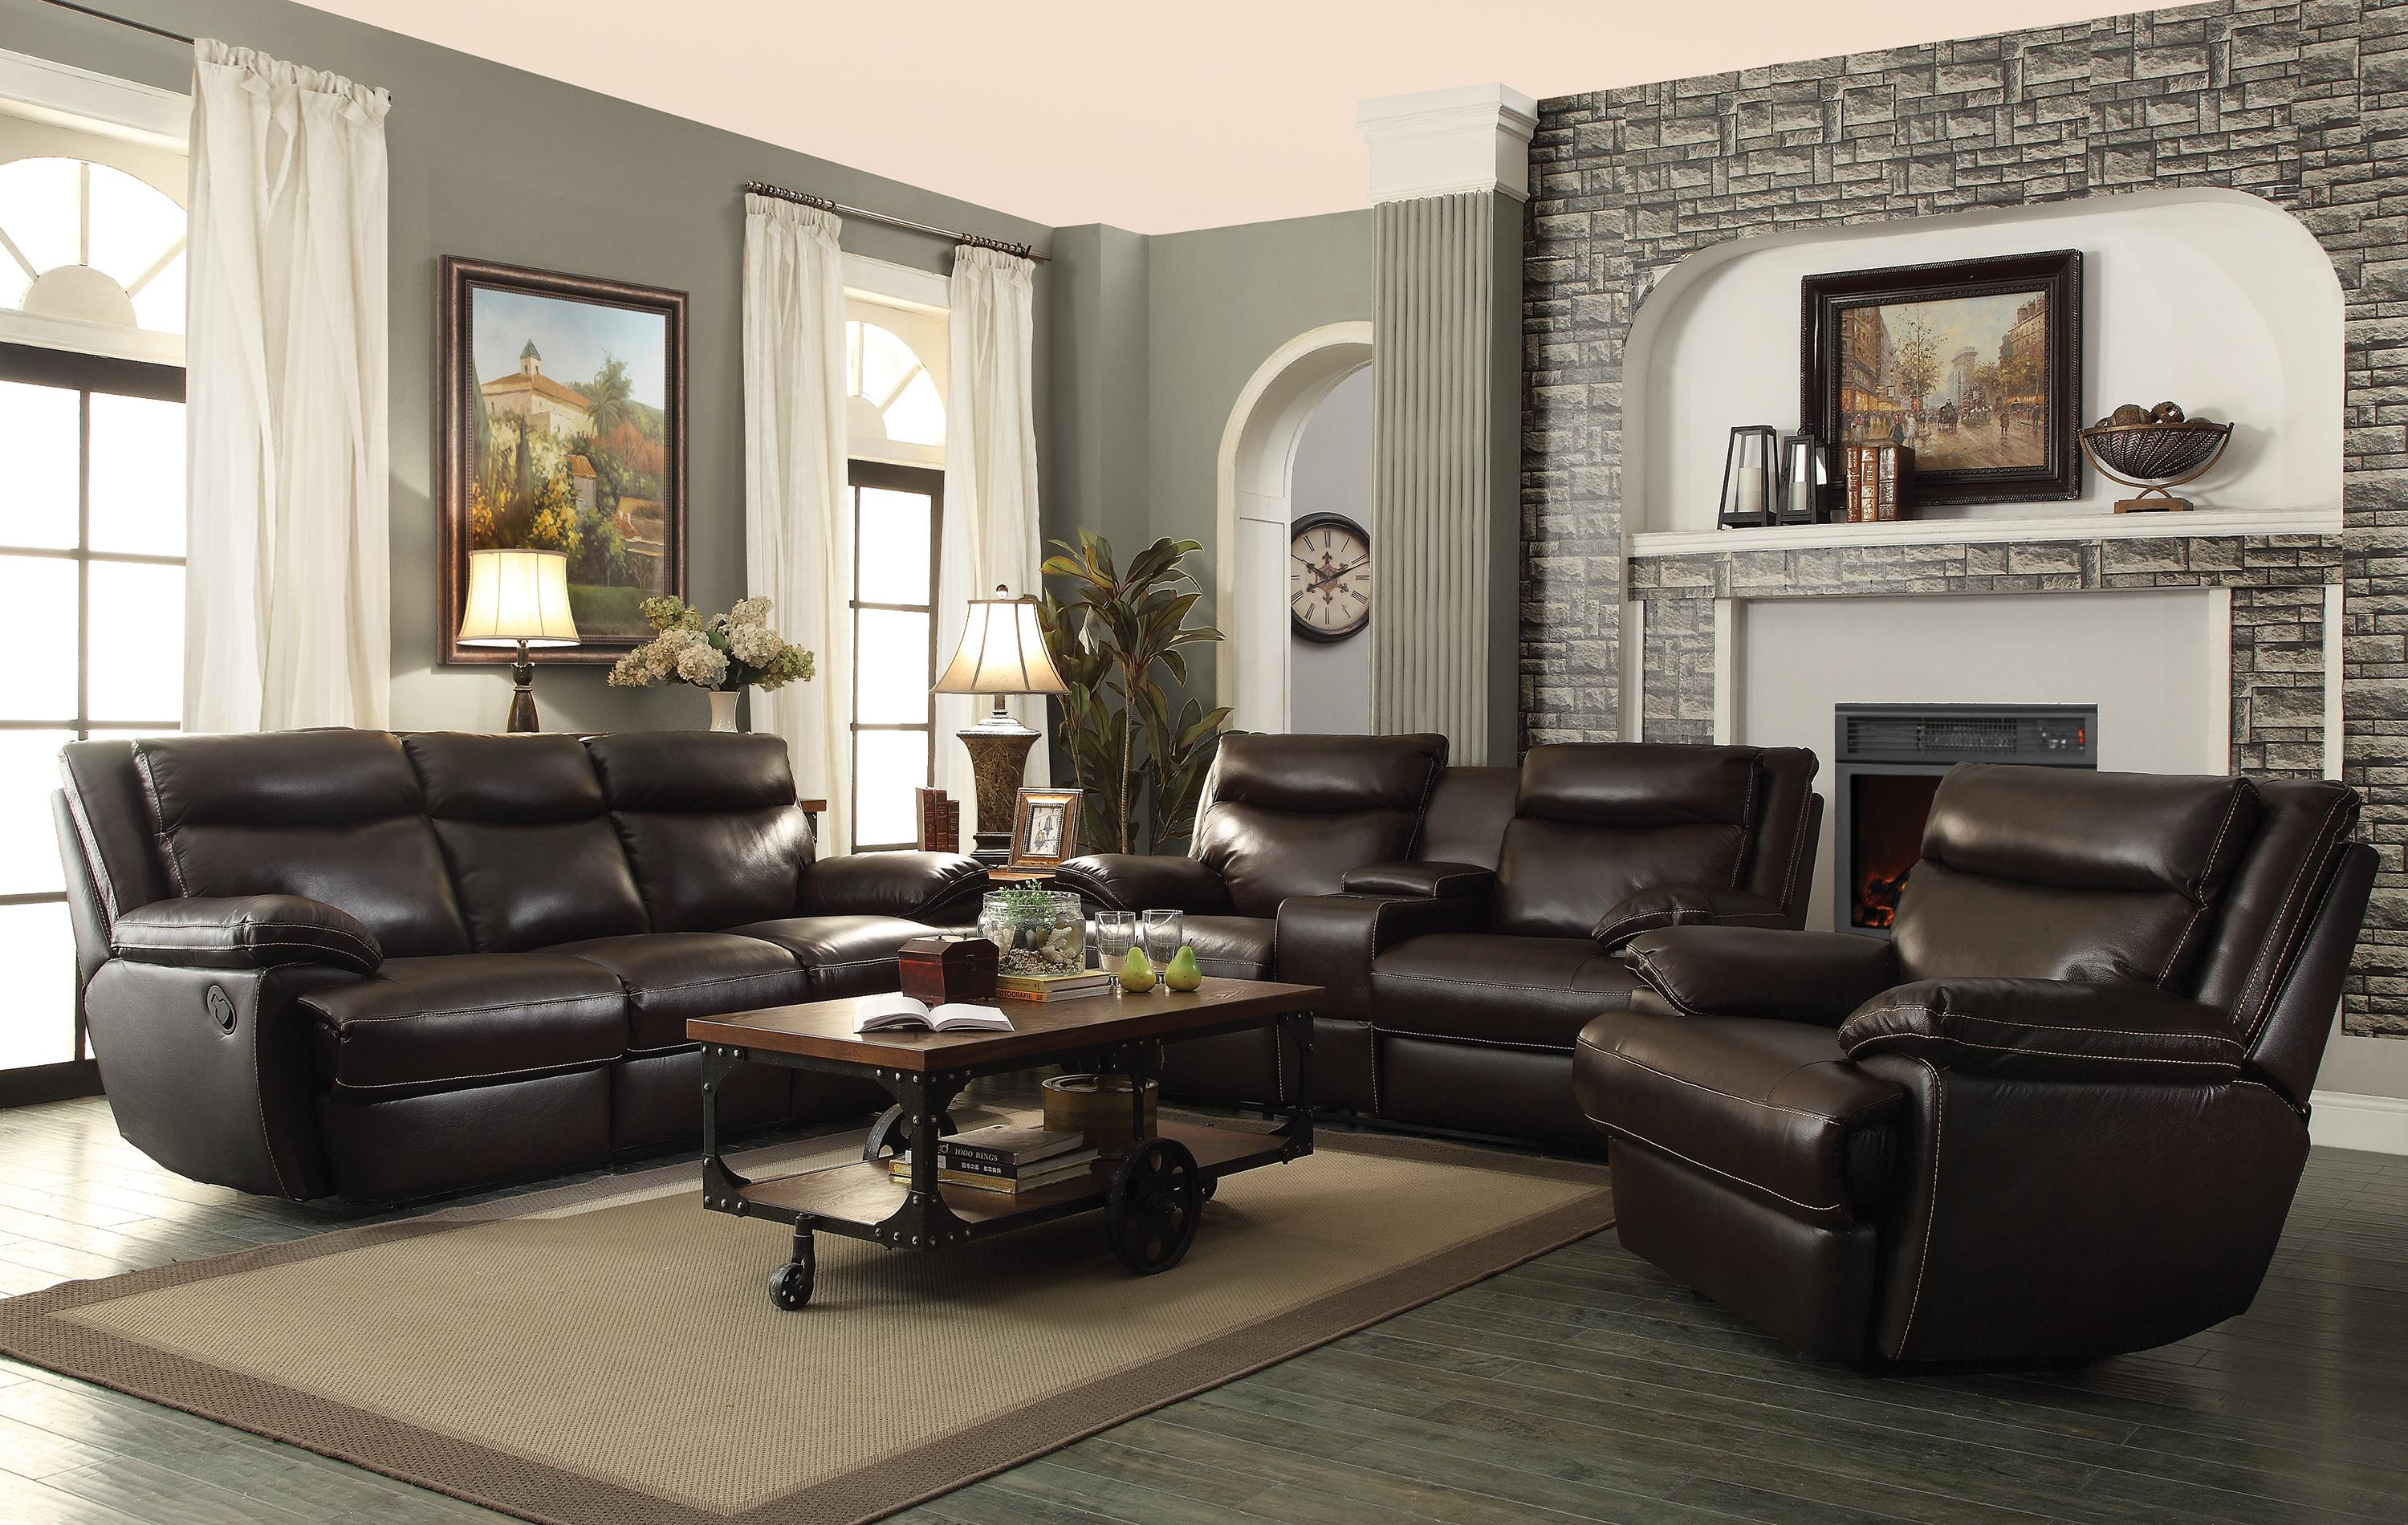 Phenomenal Macpherson Casual Leather Reclining Sofa Andrewgaddart Wooden Chair Designs For Living Room Andrewgaddartcom